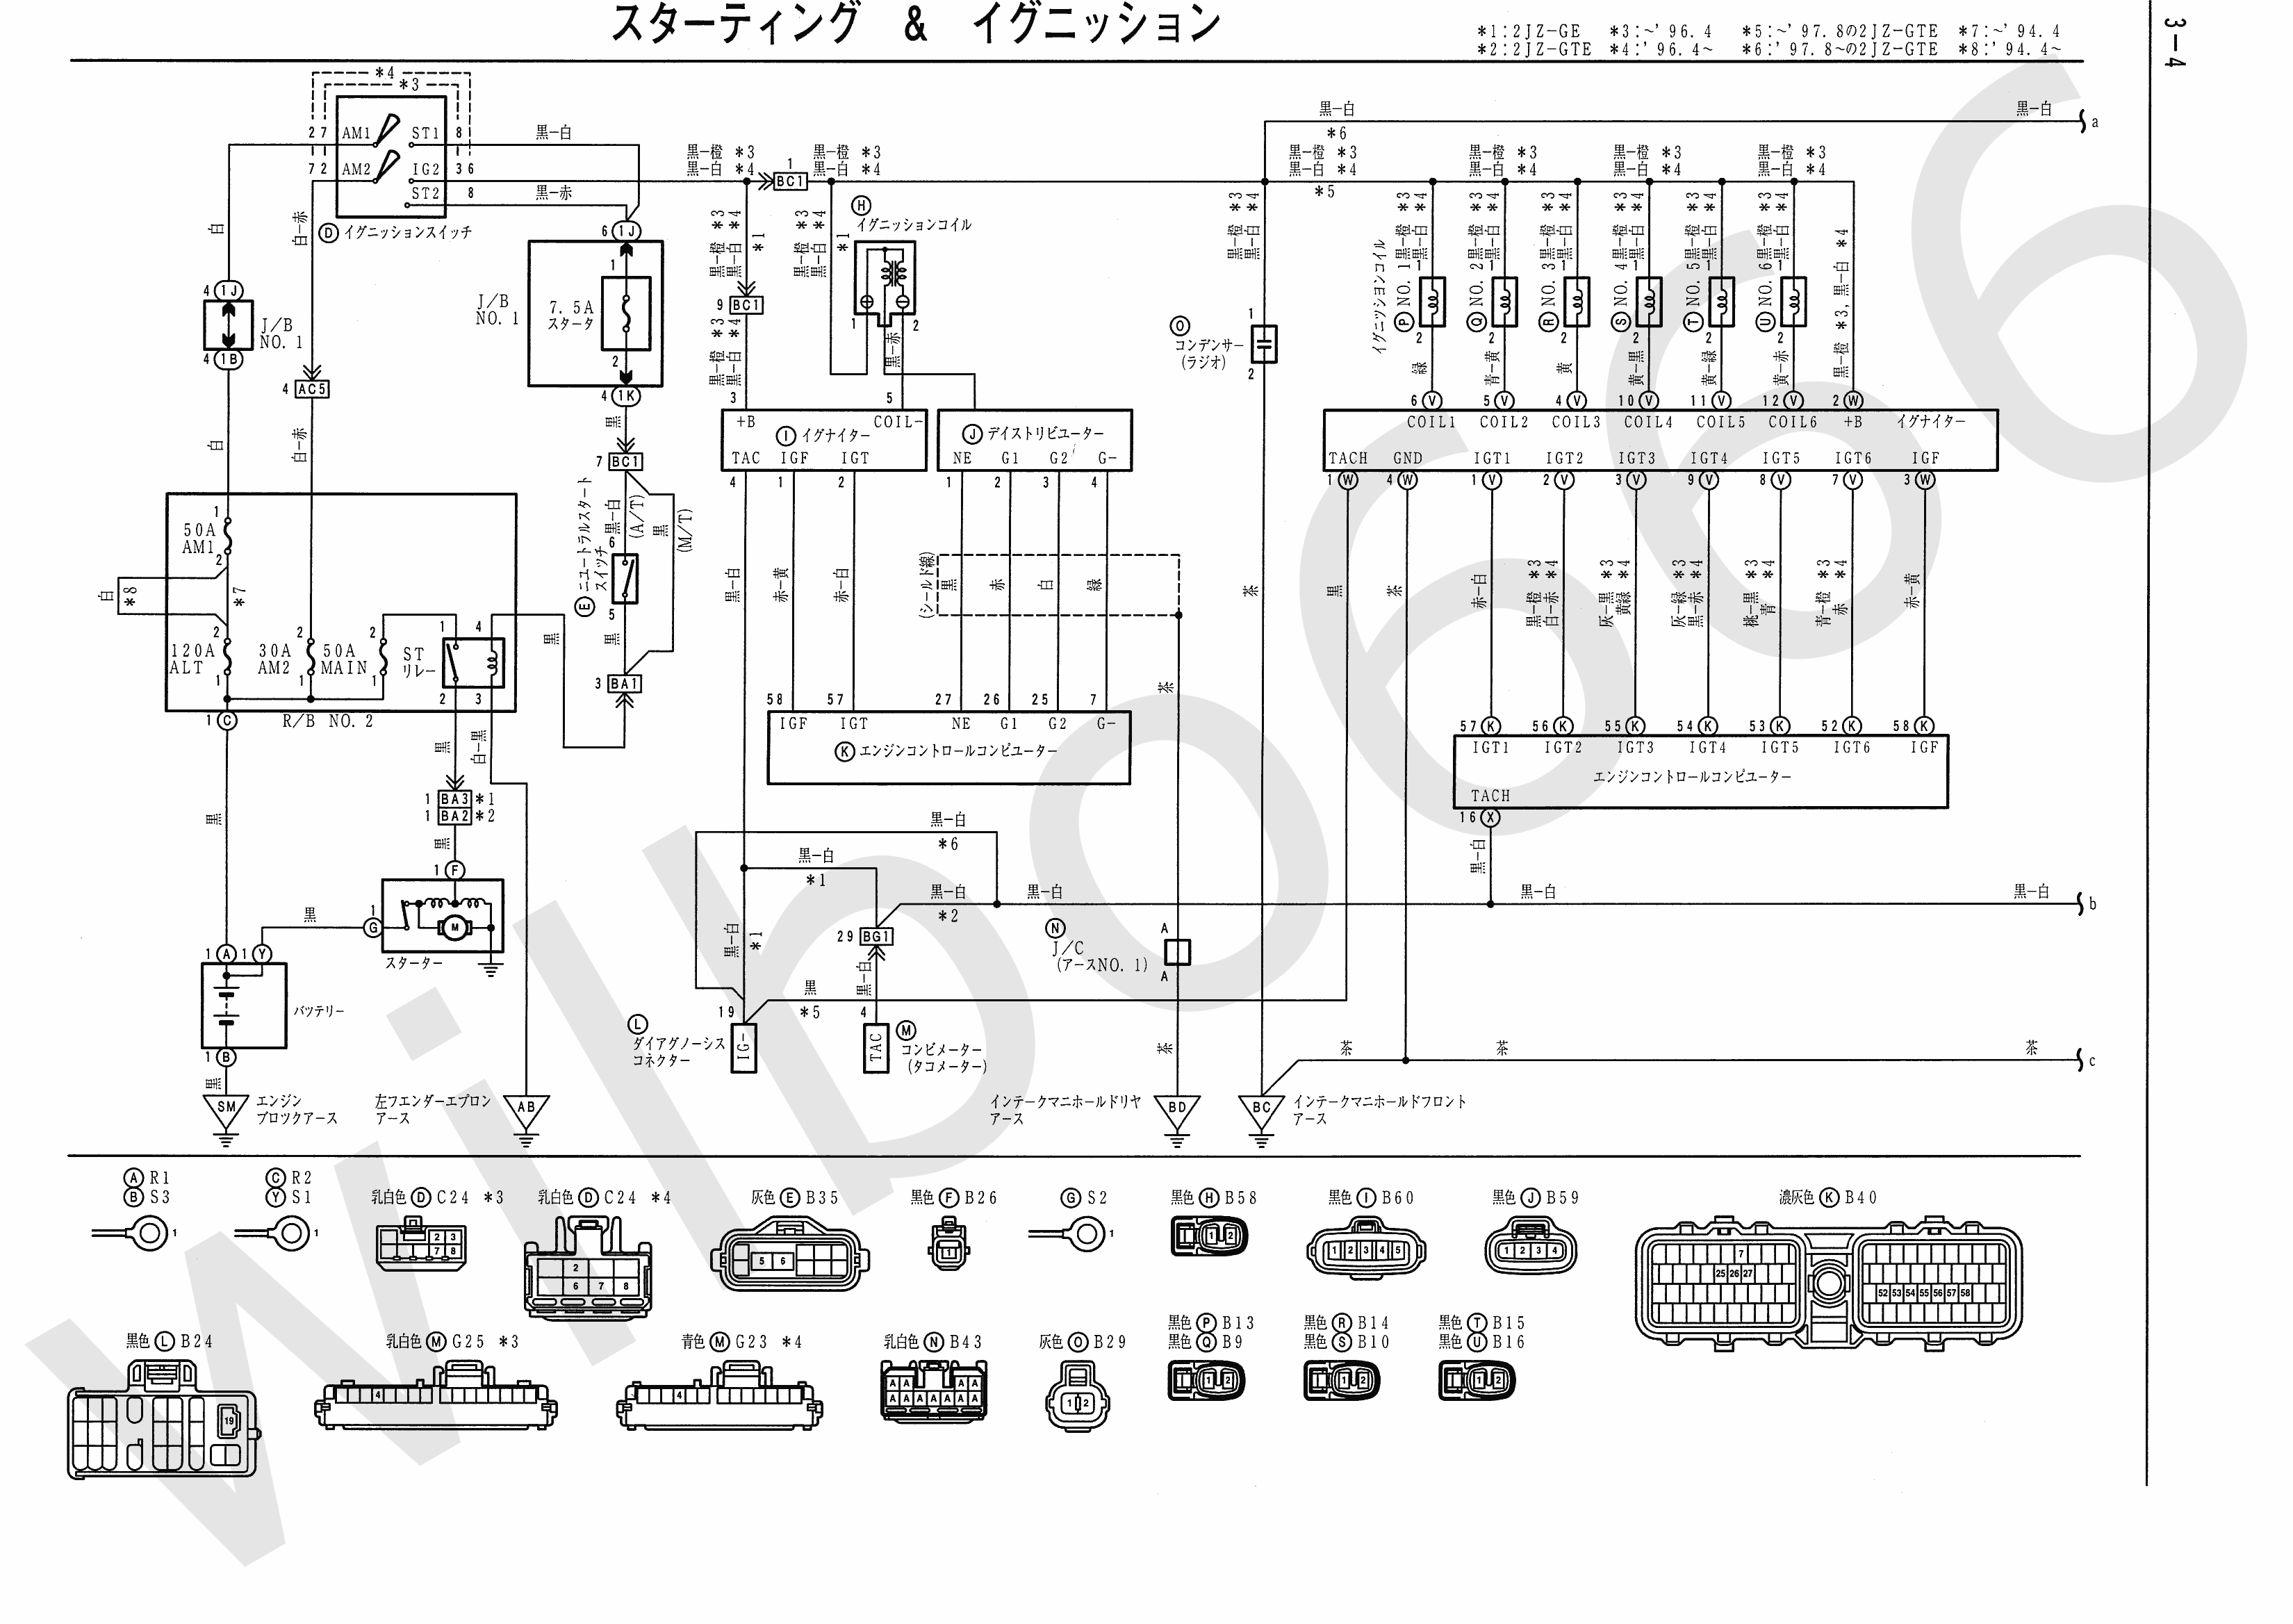 JZA80 Electrical Wiring Diagram 6742505 3 4?ssl\\\\\\\\\\\\\\\\\\\\\\\\\\\\\\\\\\\\\\\\\\\\\\\\\\\\\\\\\\\\\\=1 100 [ ae86 wiring diagram wiring diagram schematics ] poe  at panicattacktreatment.co